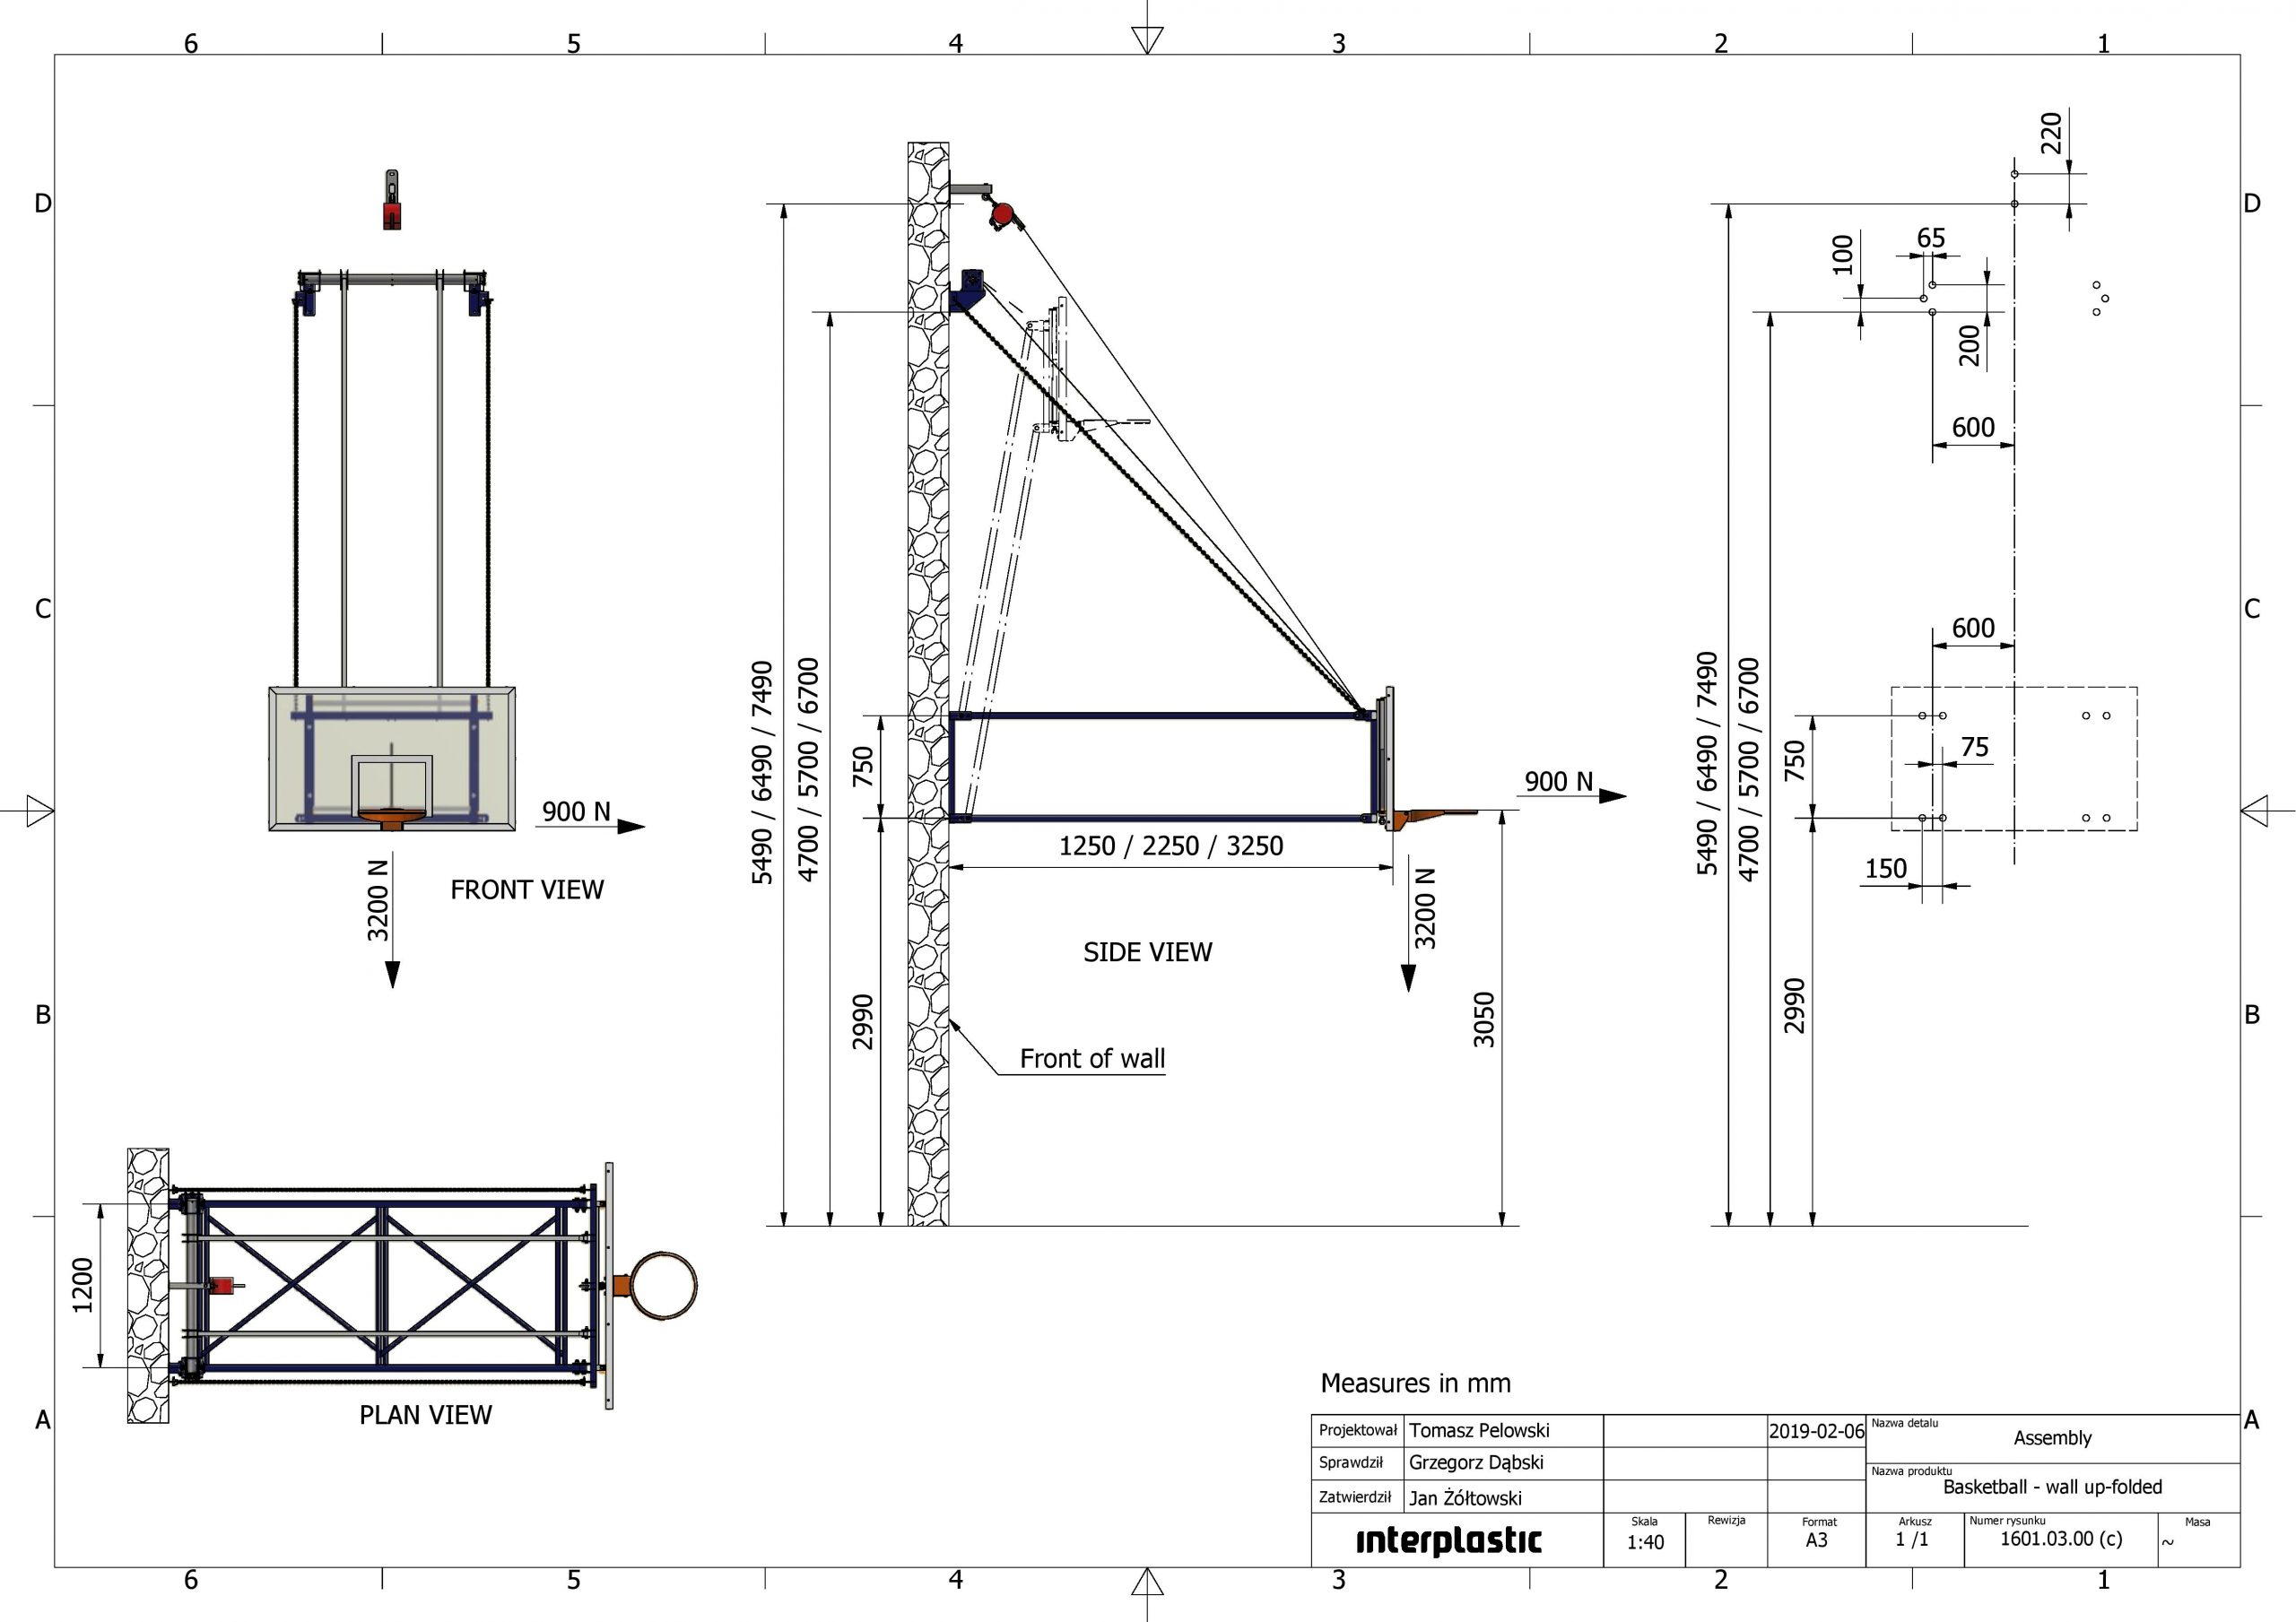 Electrically foldable backboard support structure 425 cm